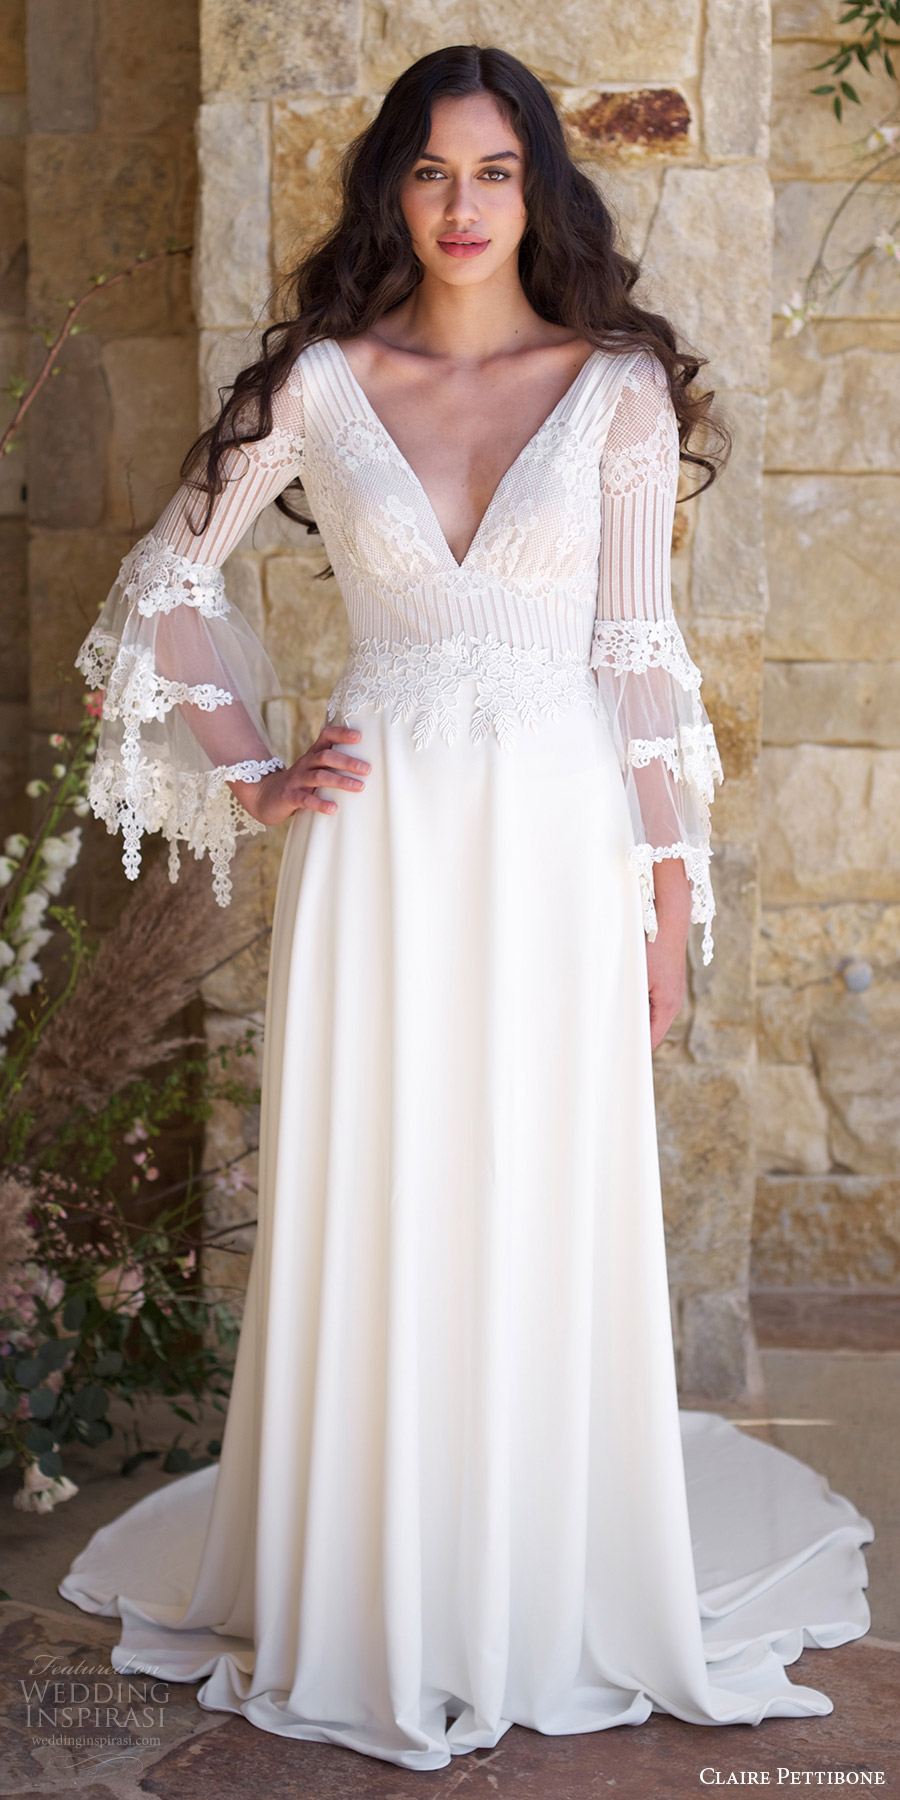 claire pettibone spring 2018 bridal long bell sleeves deep v neck lace bodice a line wedding dress (sauvignon) mv boho romantic long train